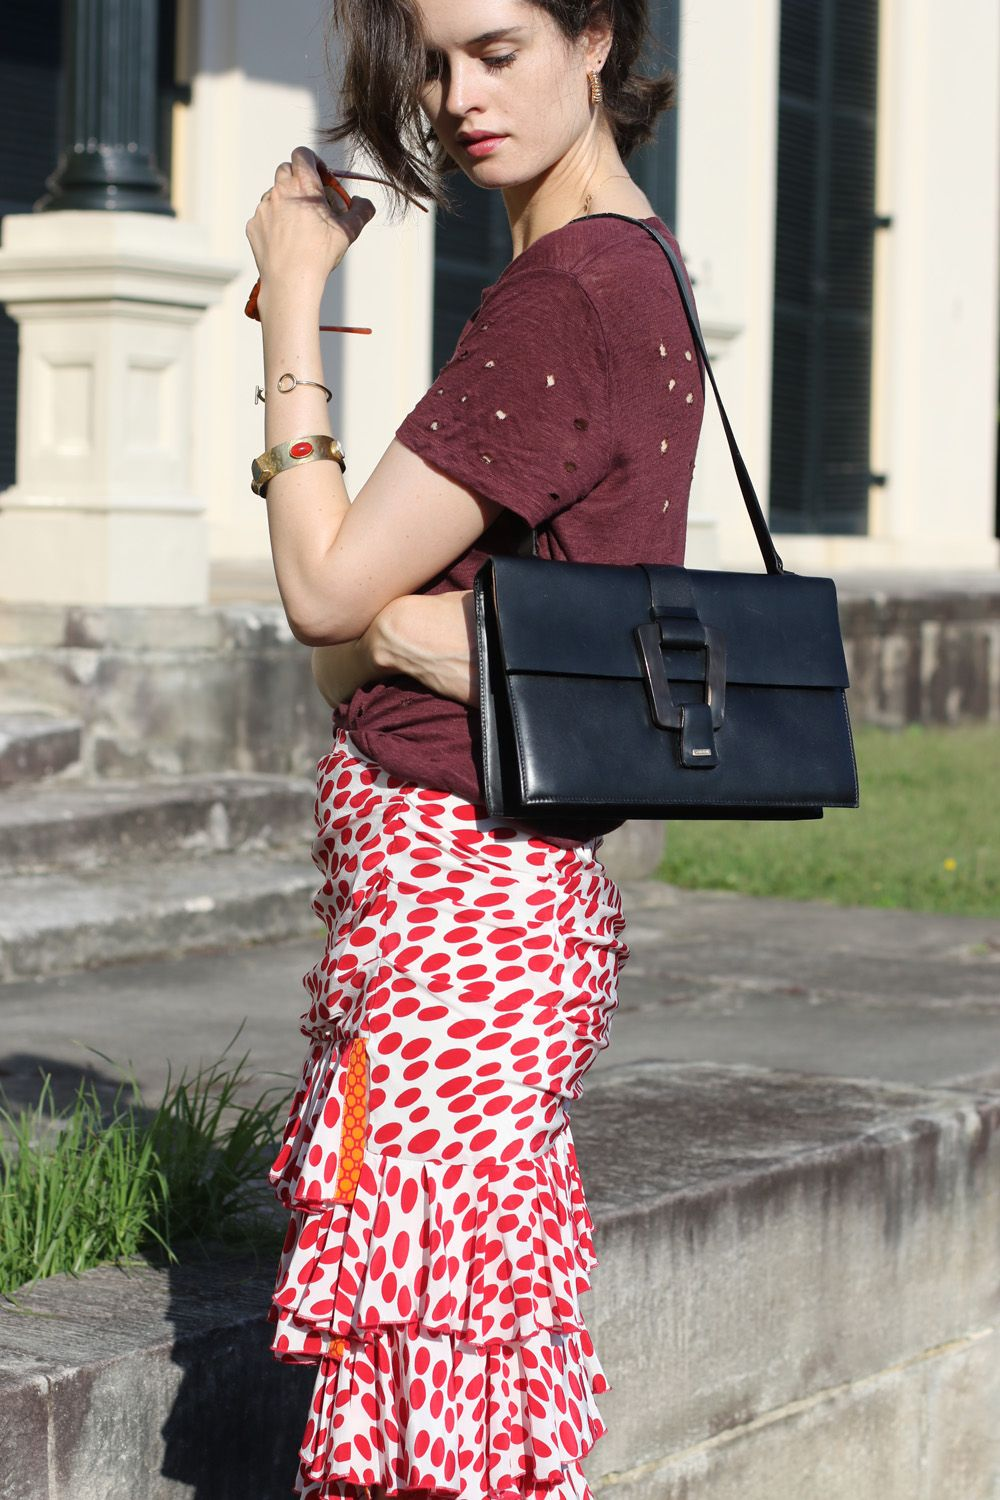 Australian Fashion Blog - Chloe Hill in Iro Paris t-shirt and Easton Pearson red frilly skirt